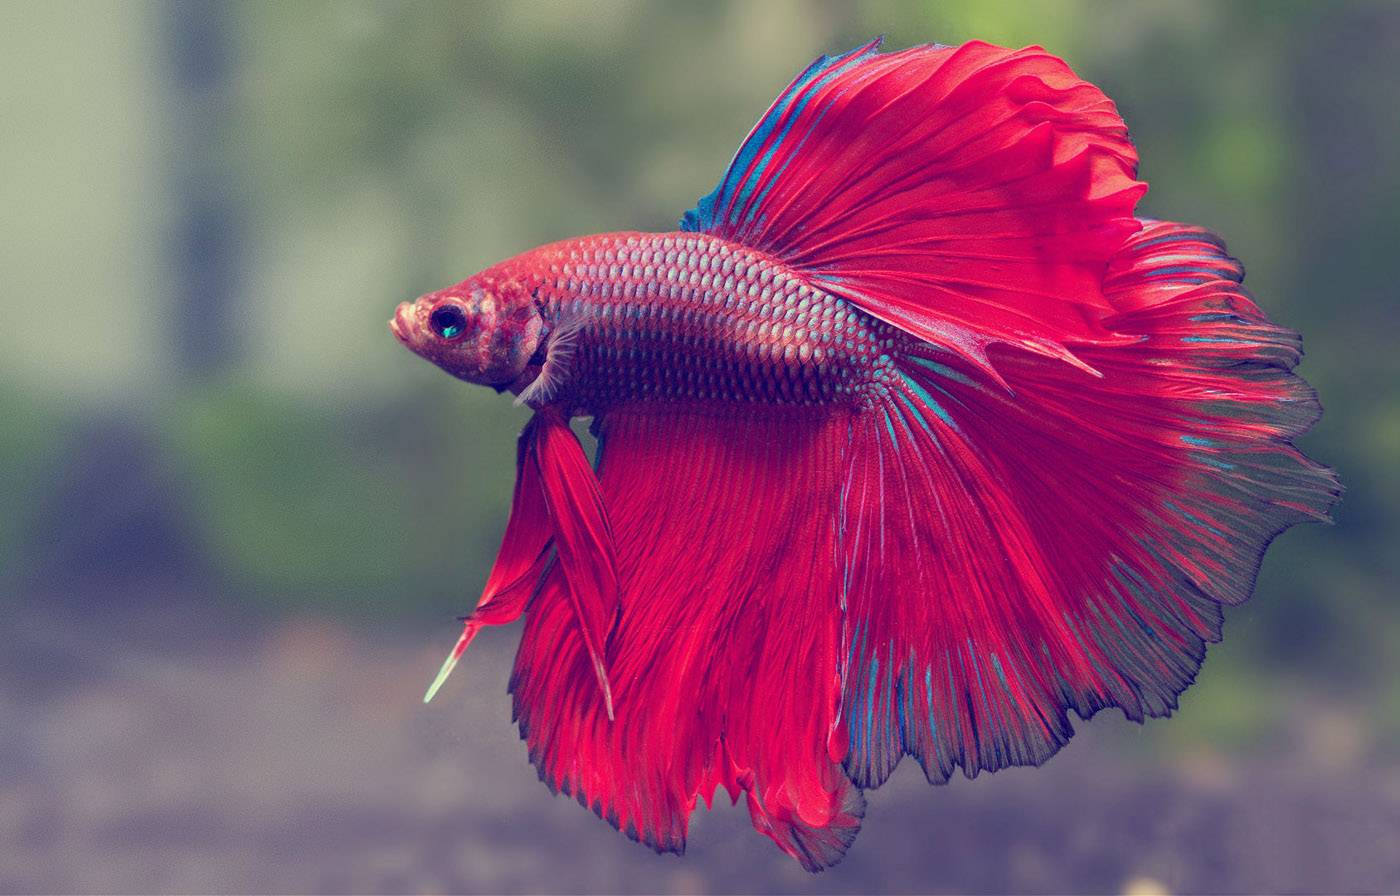 ideal water temperature for betta fish